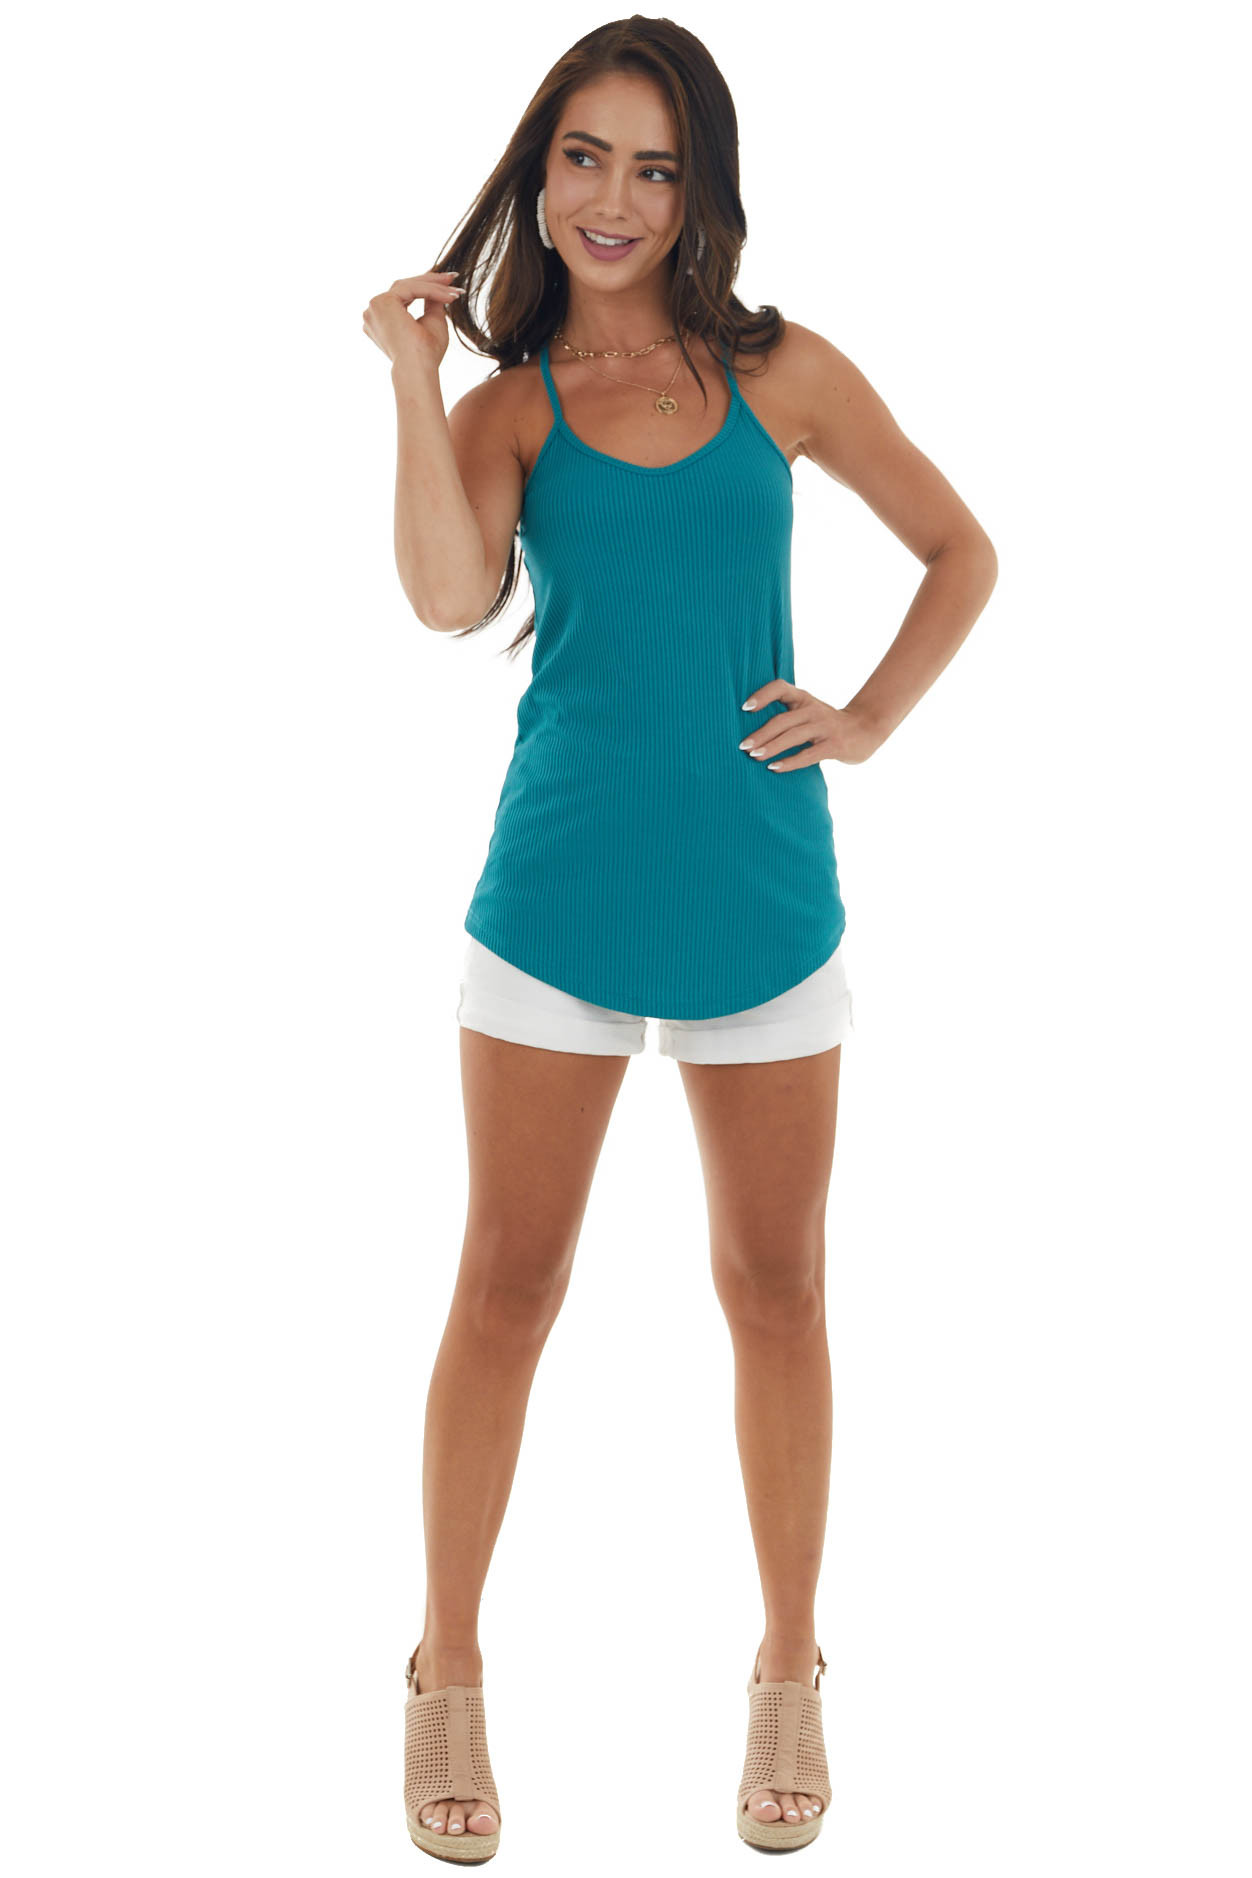 Pine Green Racerback Wide Ribbed Knit Tank Top